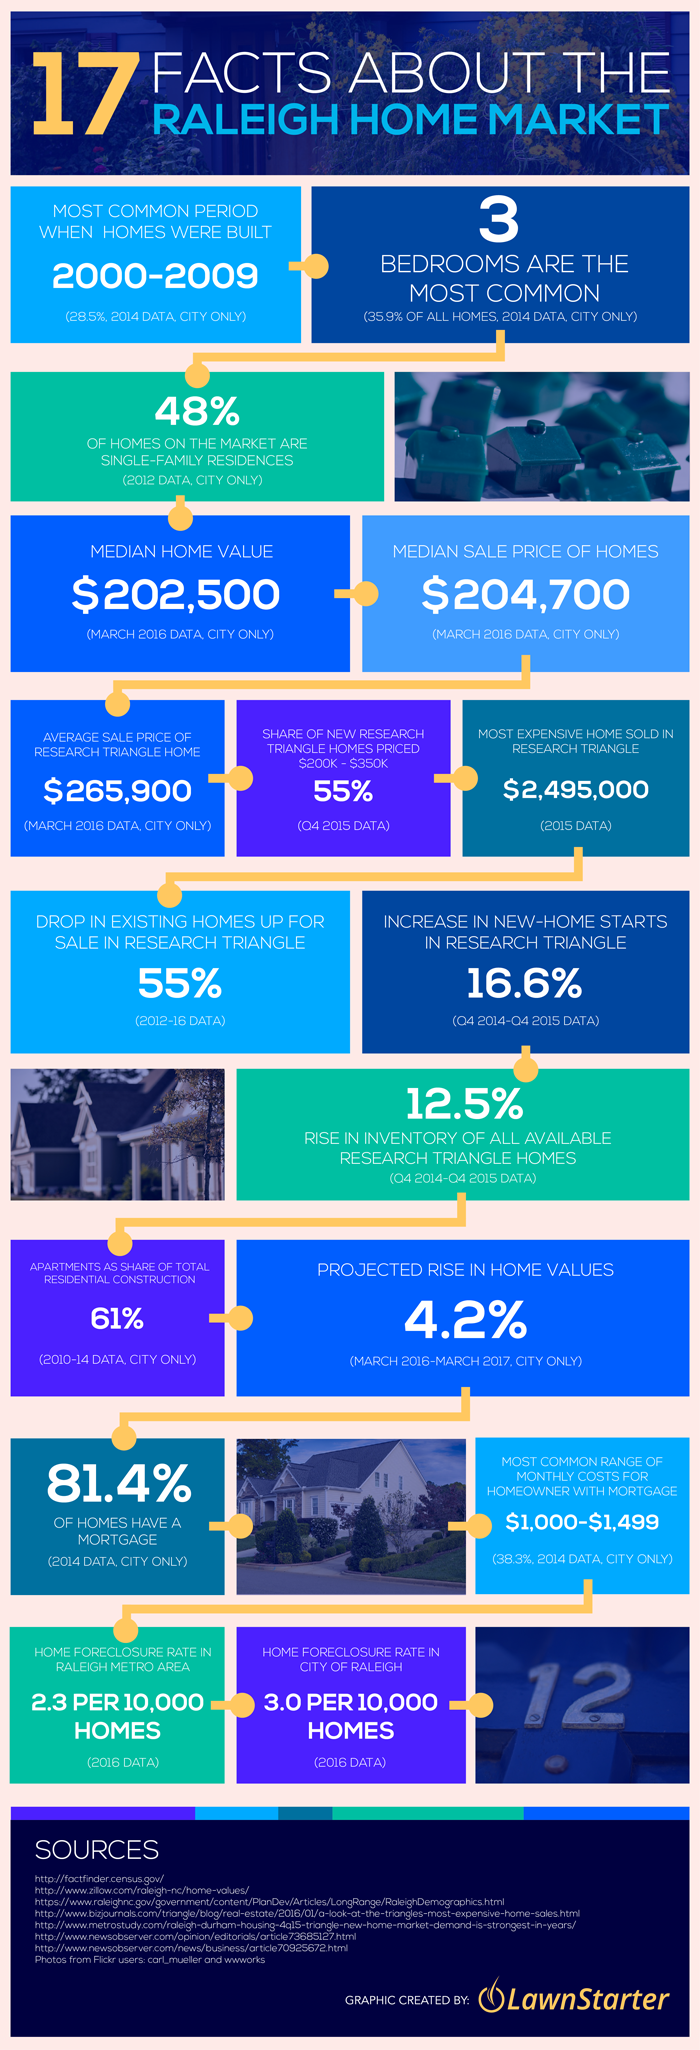 Raleigh Home Market Facts Infographic